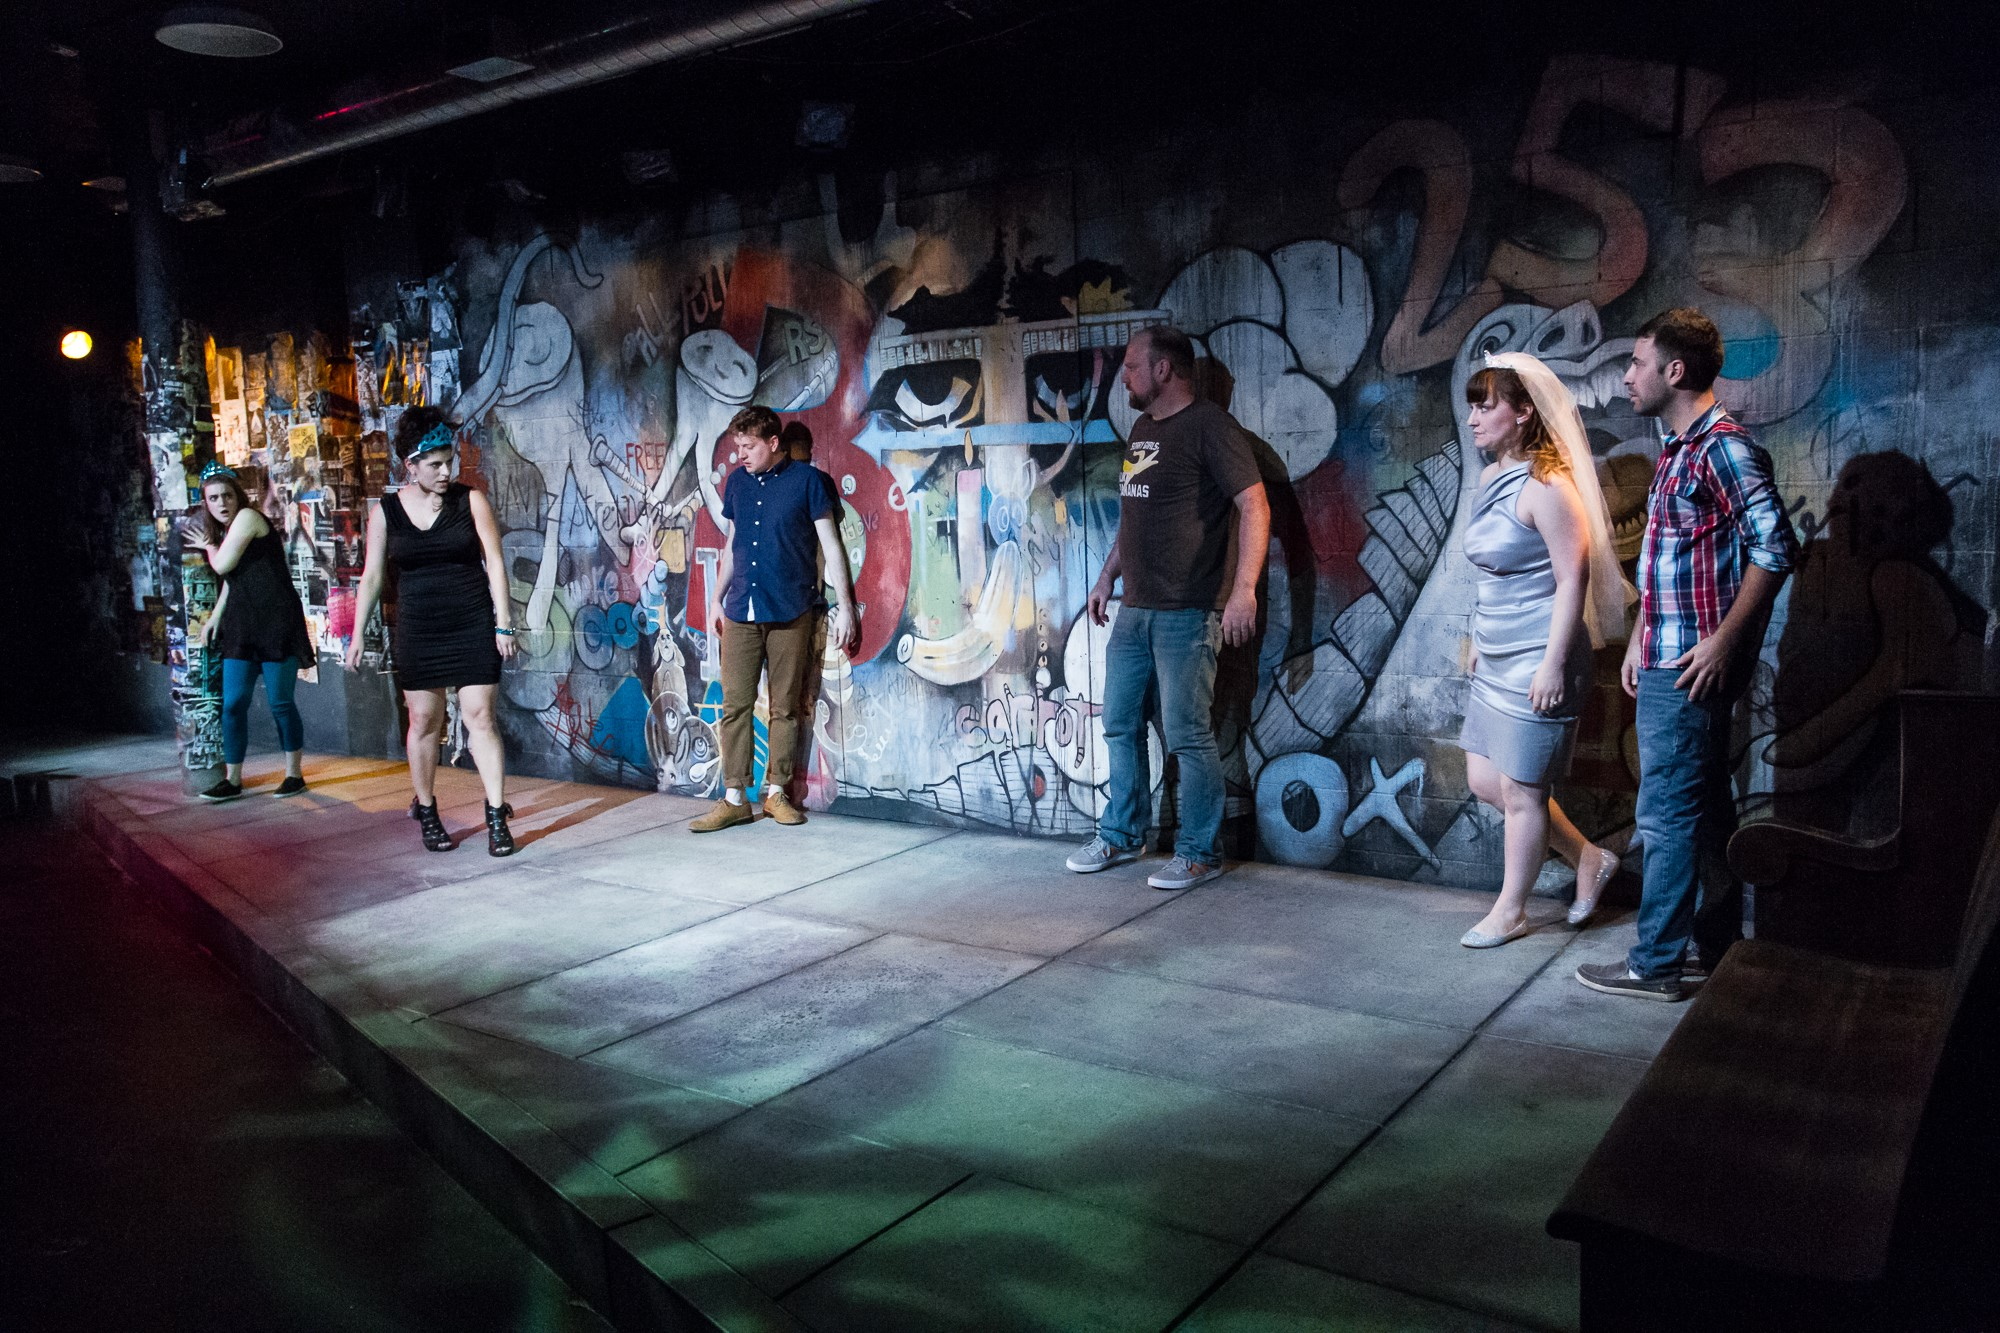 The whole cast.  Linda  - Shawna Nordman,  Melissa -  Nicole Accuardi,  Eddie -  R. David Wyllie,  Bob -  Tom Mounsey,  Marnie -  Holly Wigmore,  Frank -  Murri Lazaroff-Babi